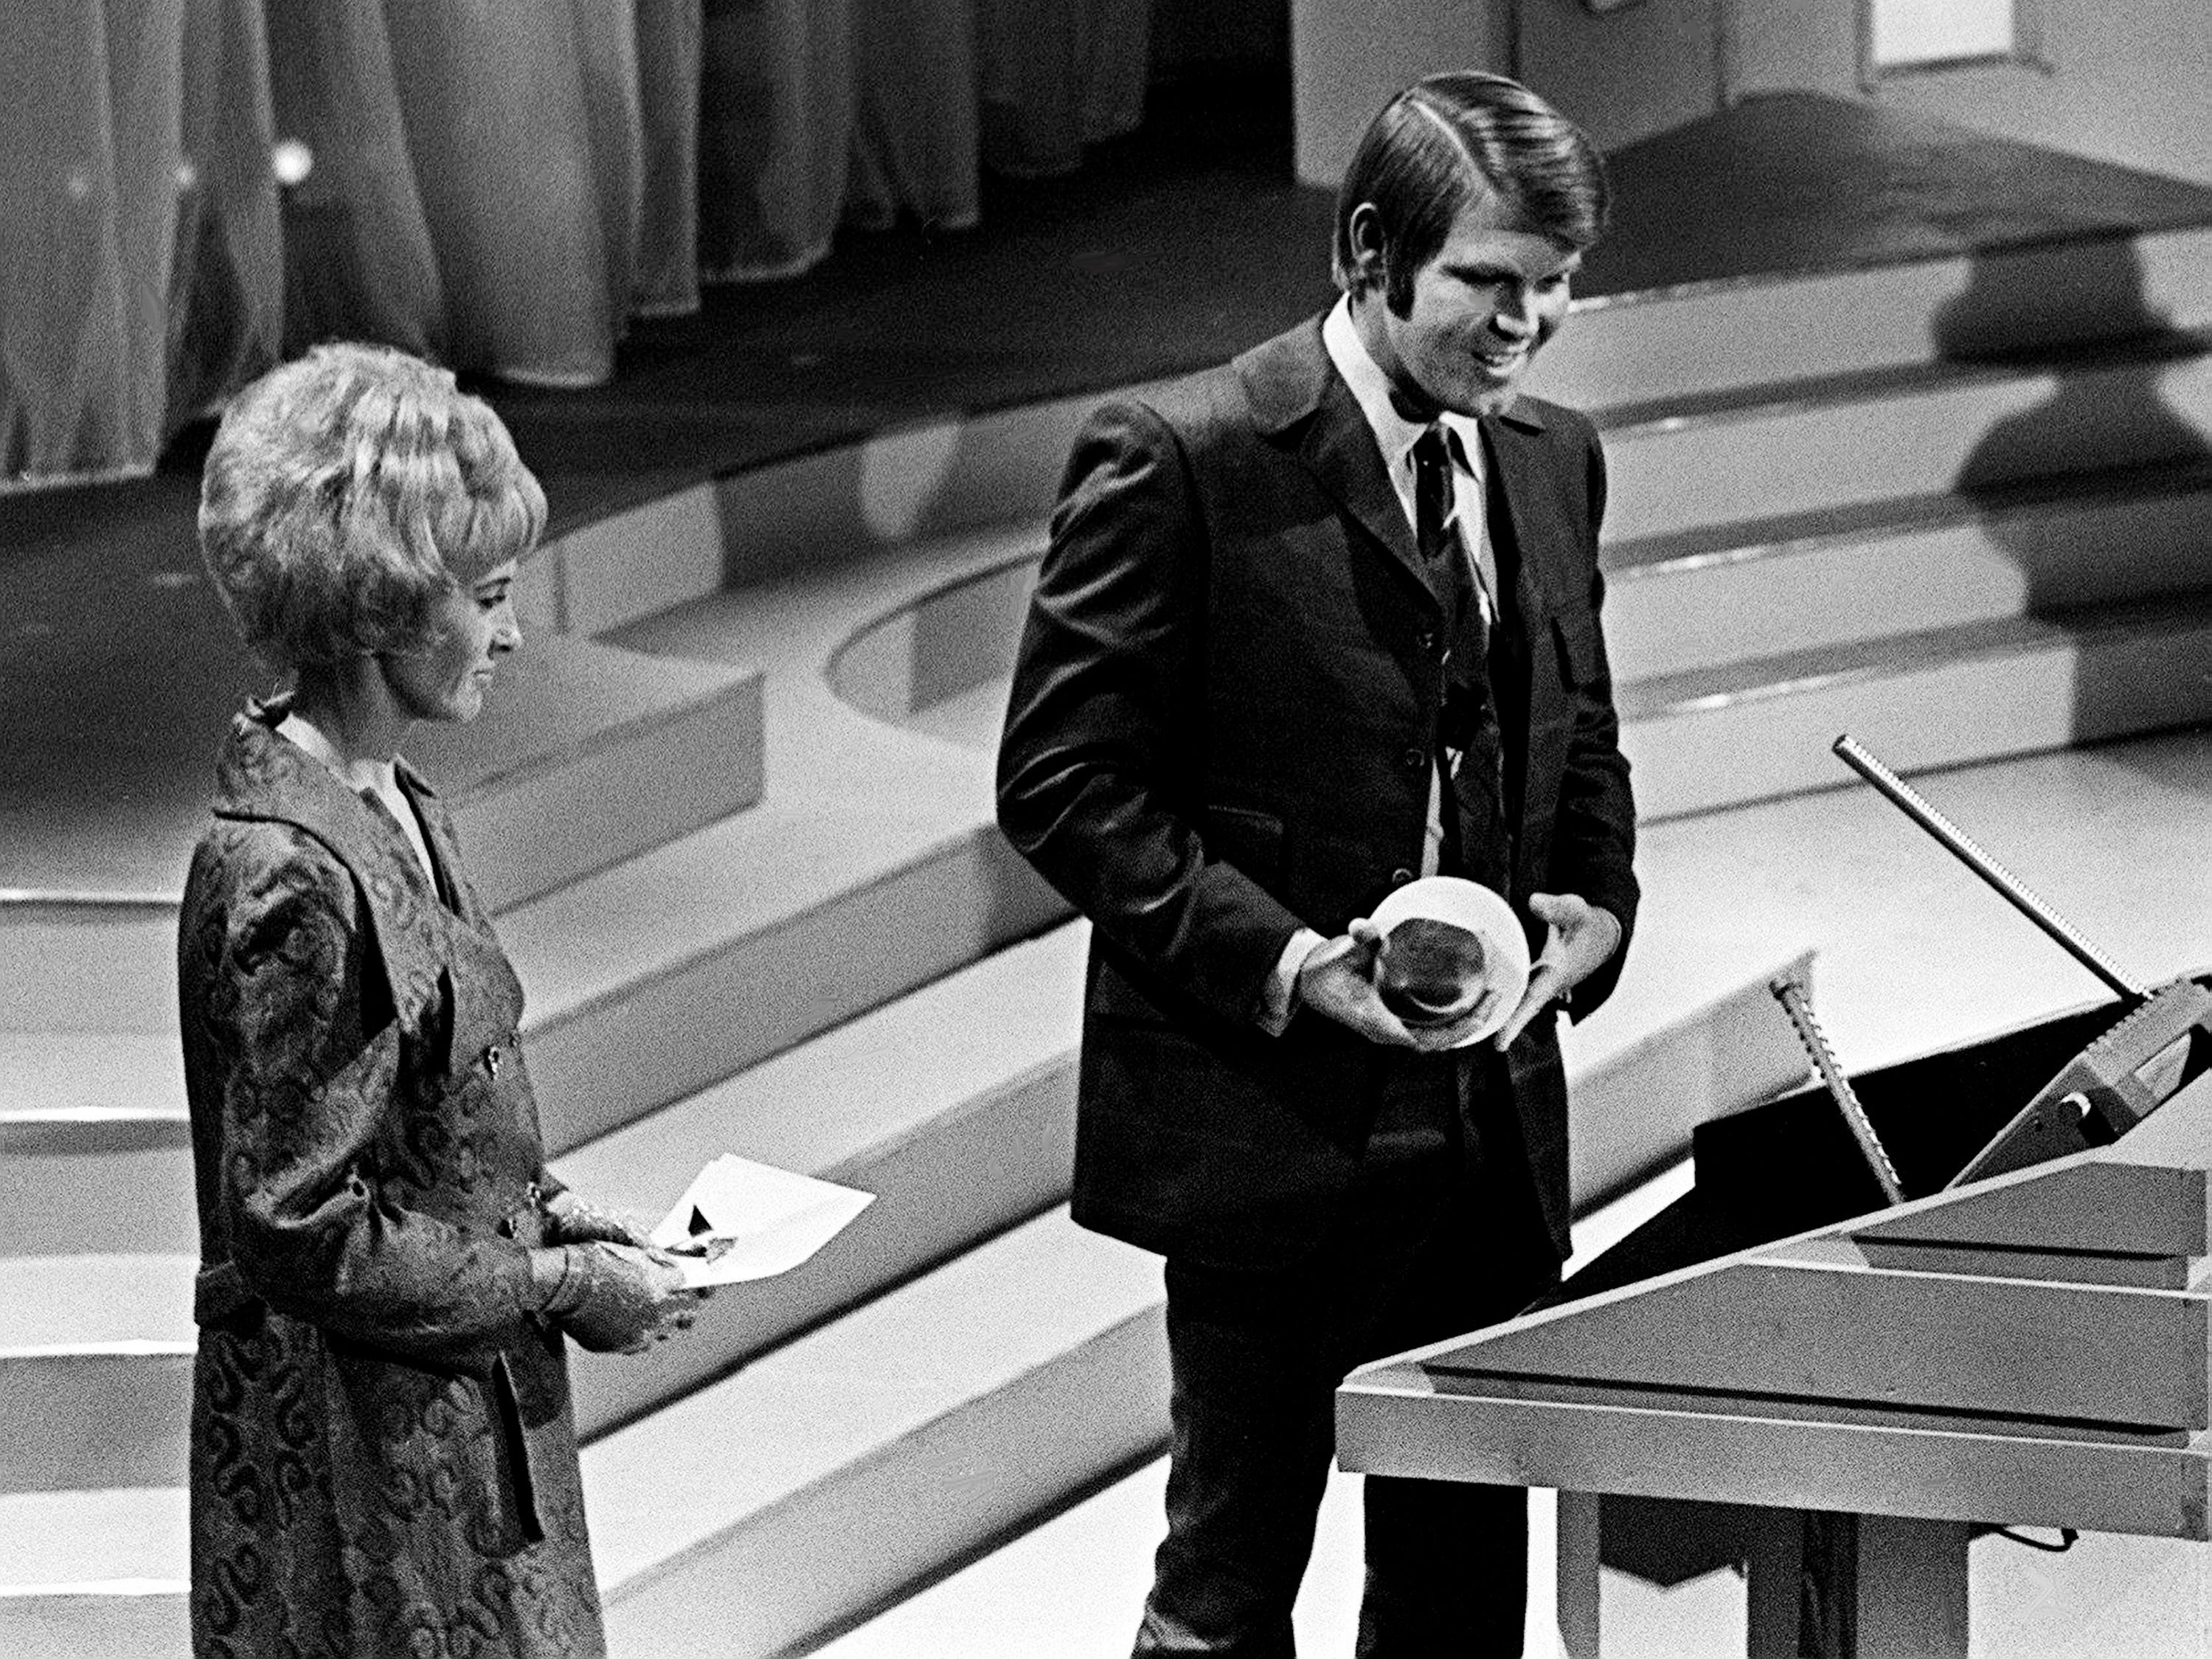 Glen Campbell speaks to the crowd after accepting the Male Vocalist of the Year award from presenter Tammy Wynette during the second annual CMA Awards show at the Ryman Auditorium on Oct. 18, 1968. Campbell also picked up the Entertainer of the Year award.